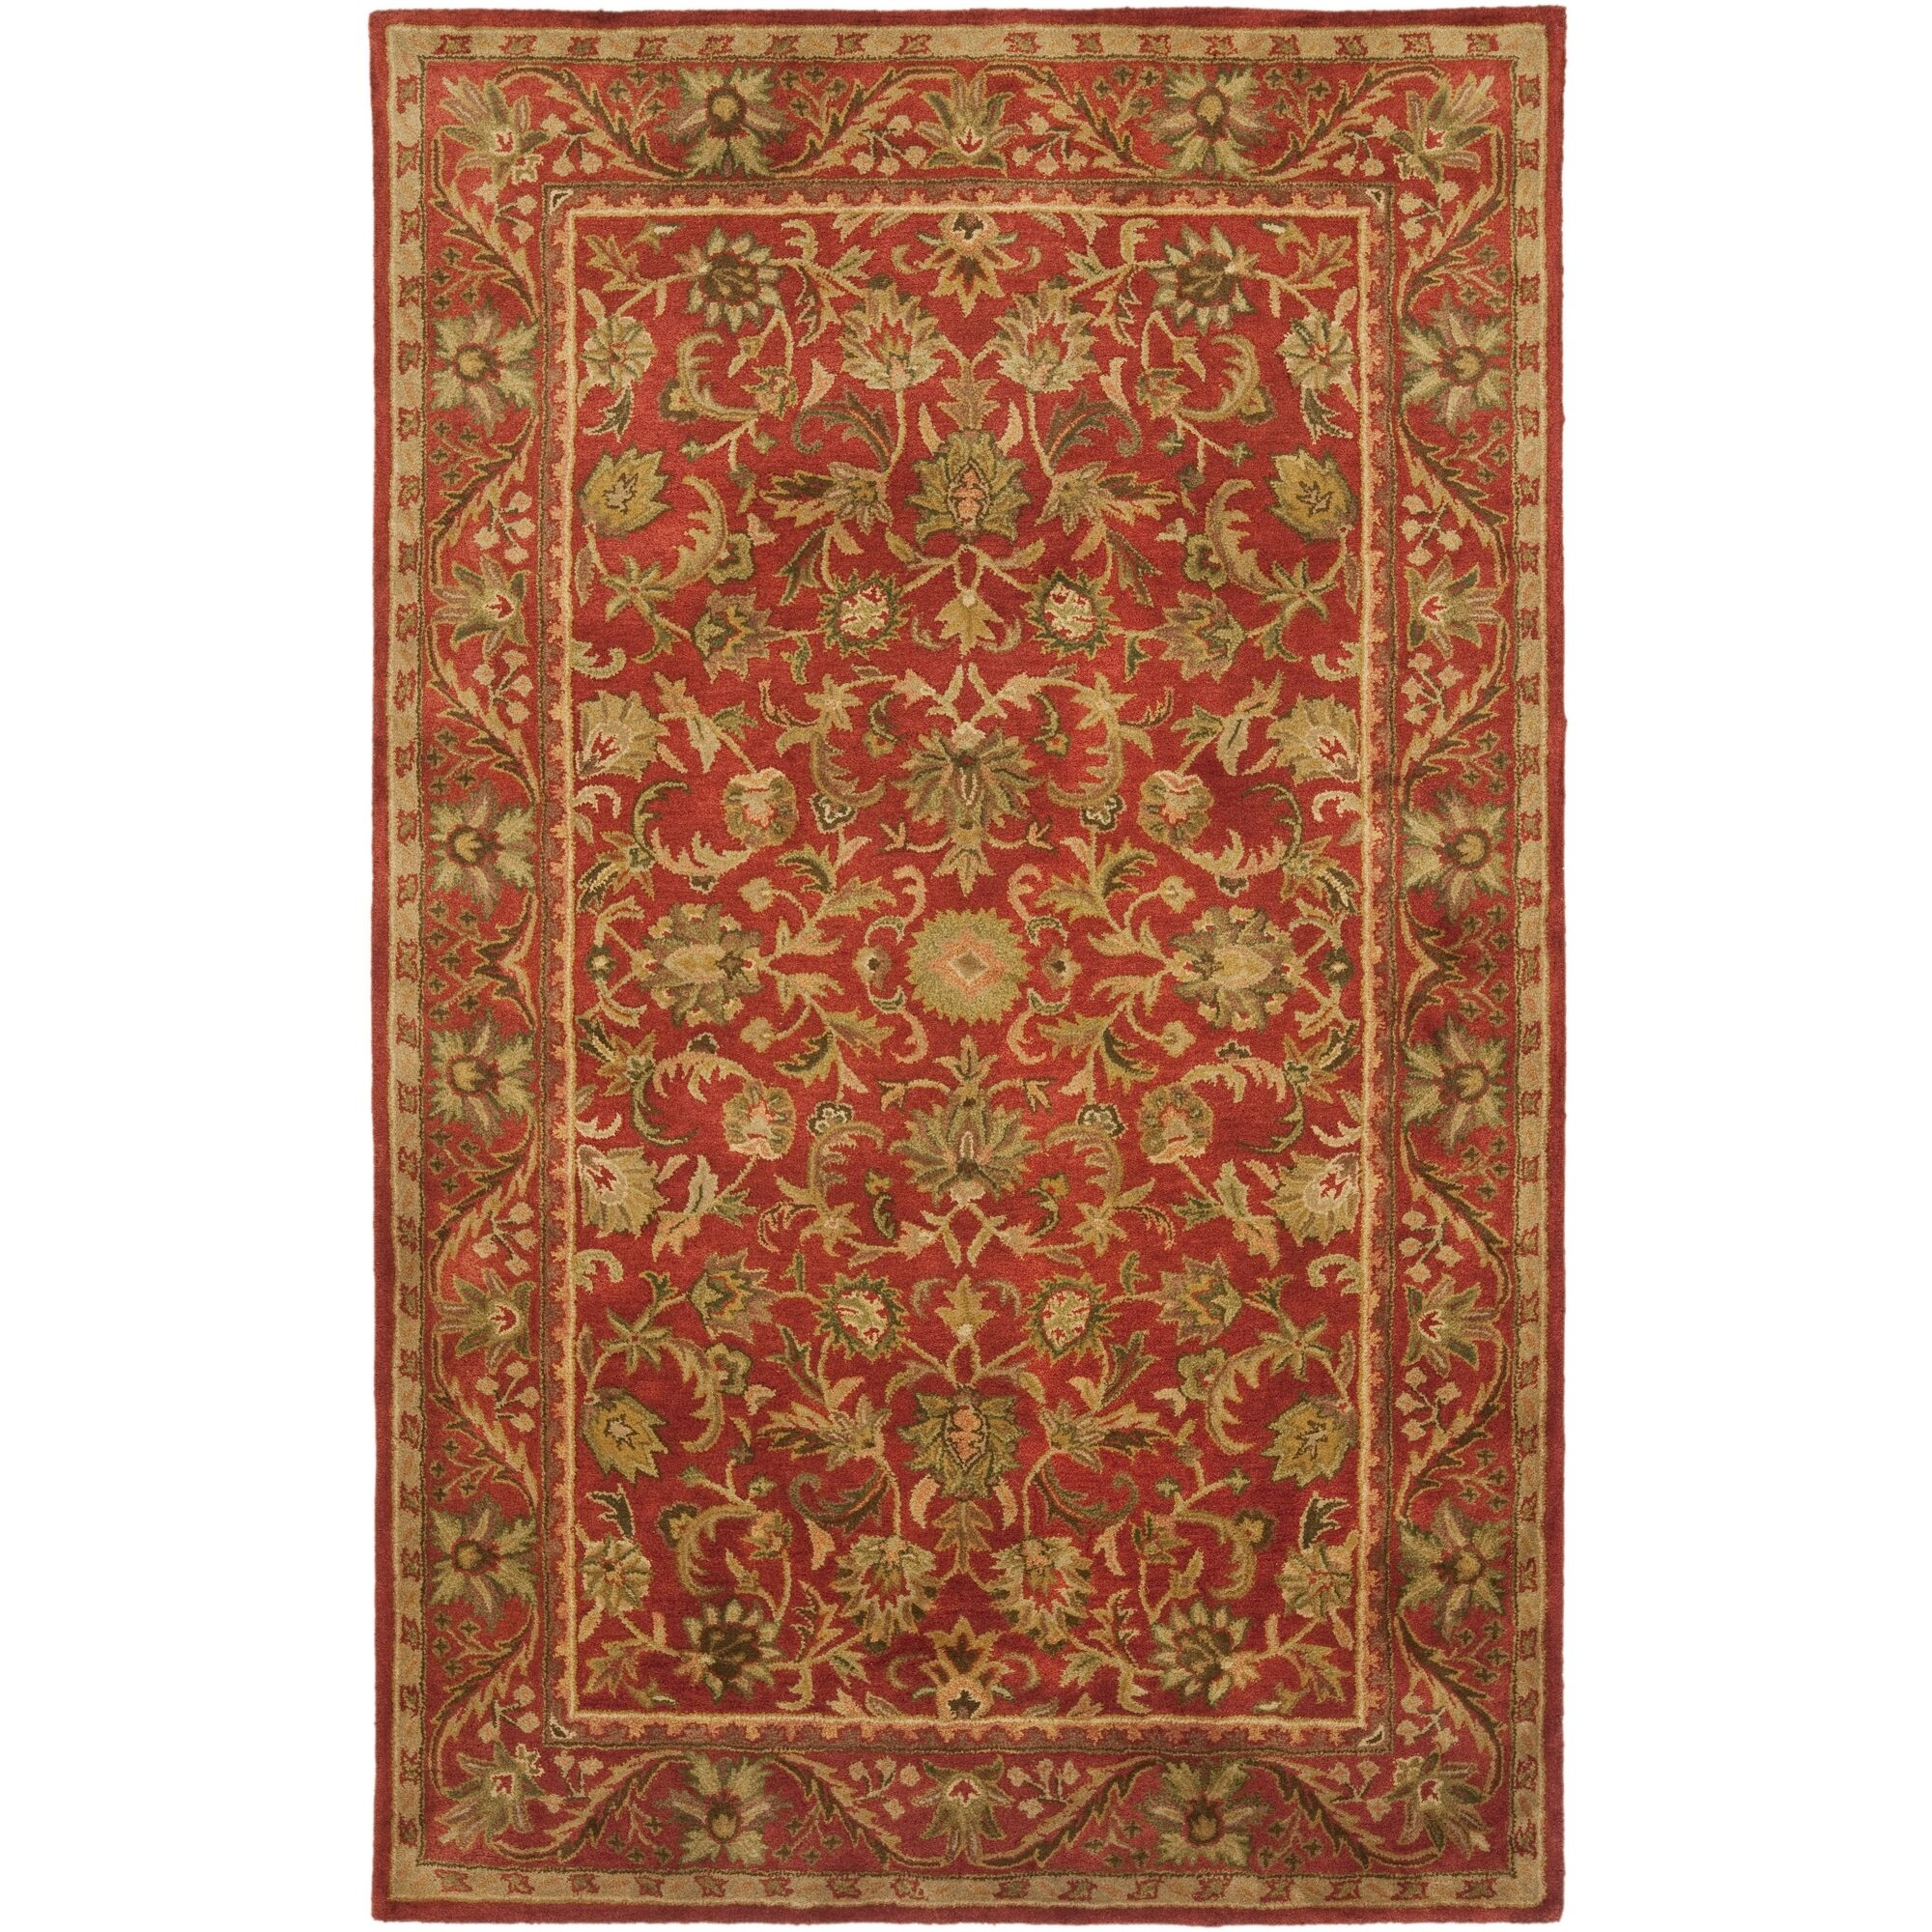 Dunbar Hand-Woven Wool Red/Gold/Green Area Rug Rug Size: Rectangle 6' x 9'